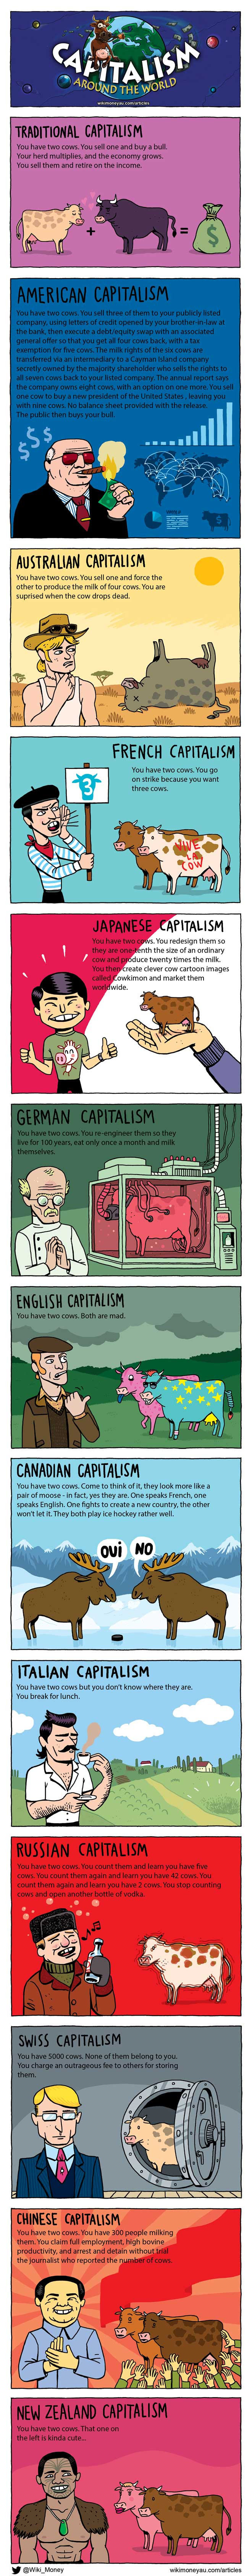 capitalism-with-cows